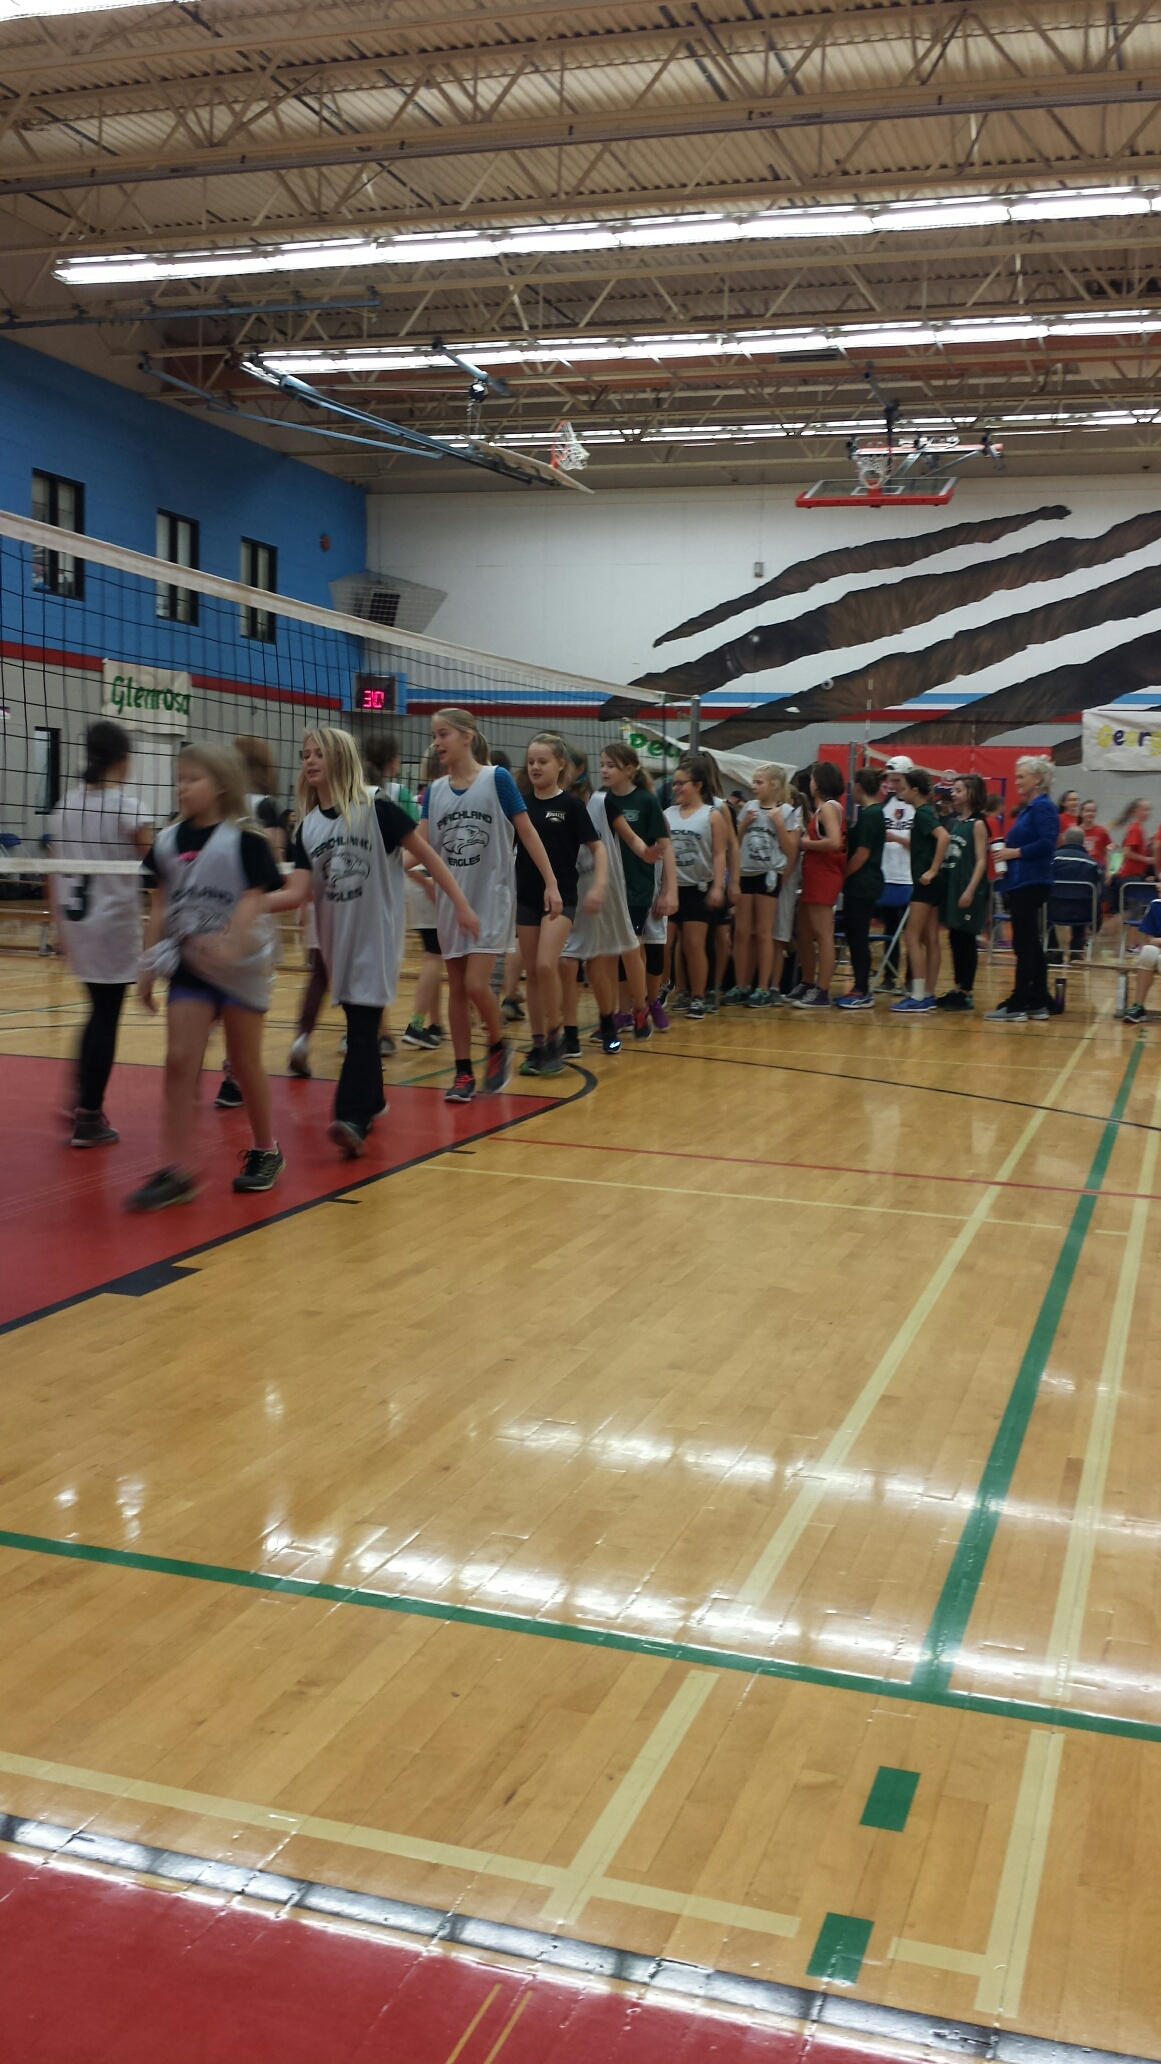 A Great Day at MBSS for our Girls Volleyball Team